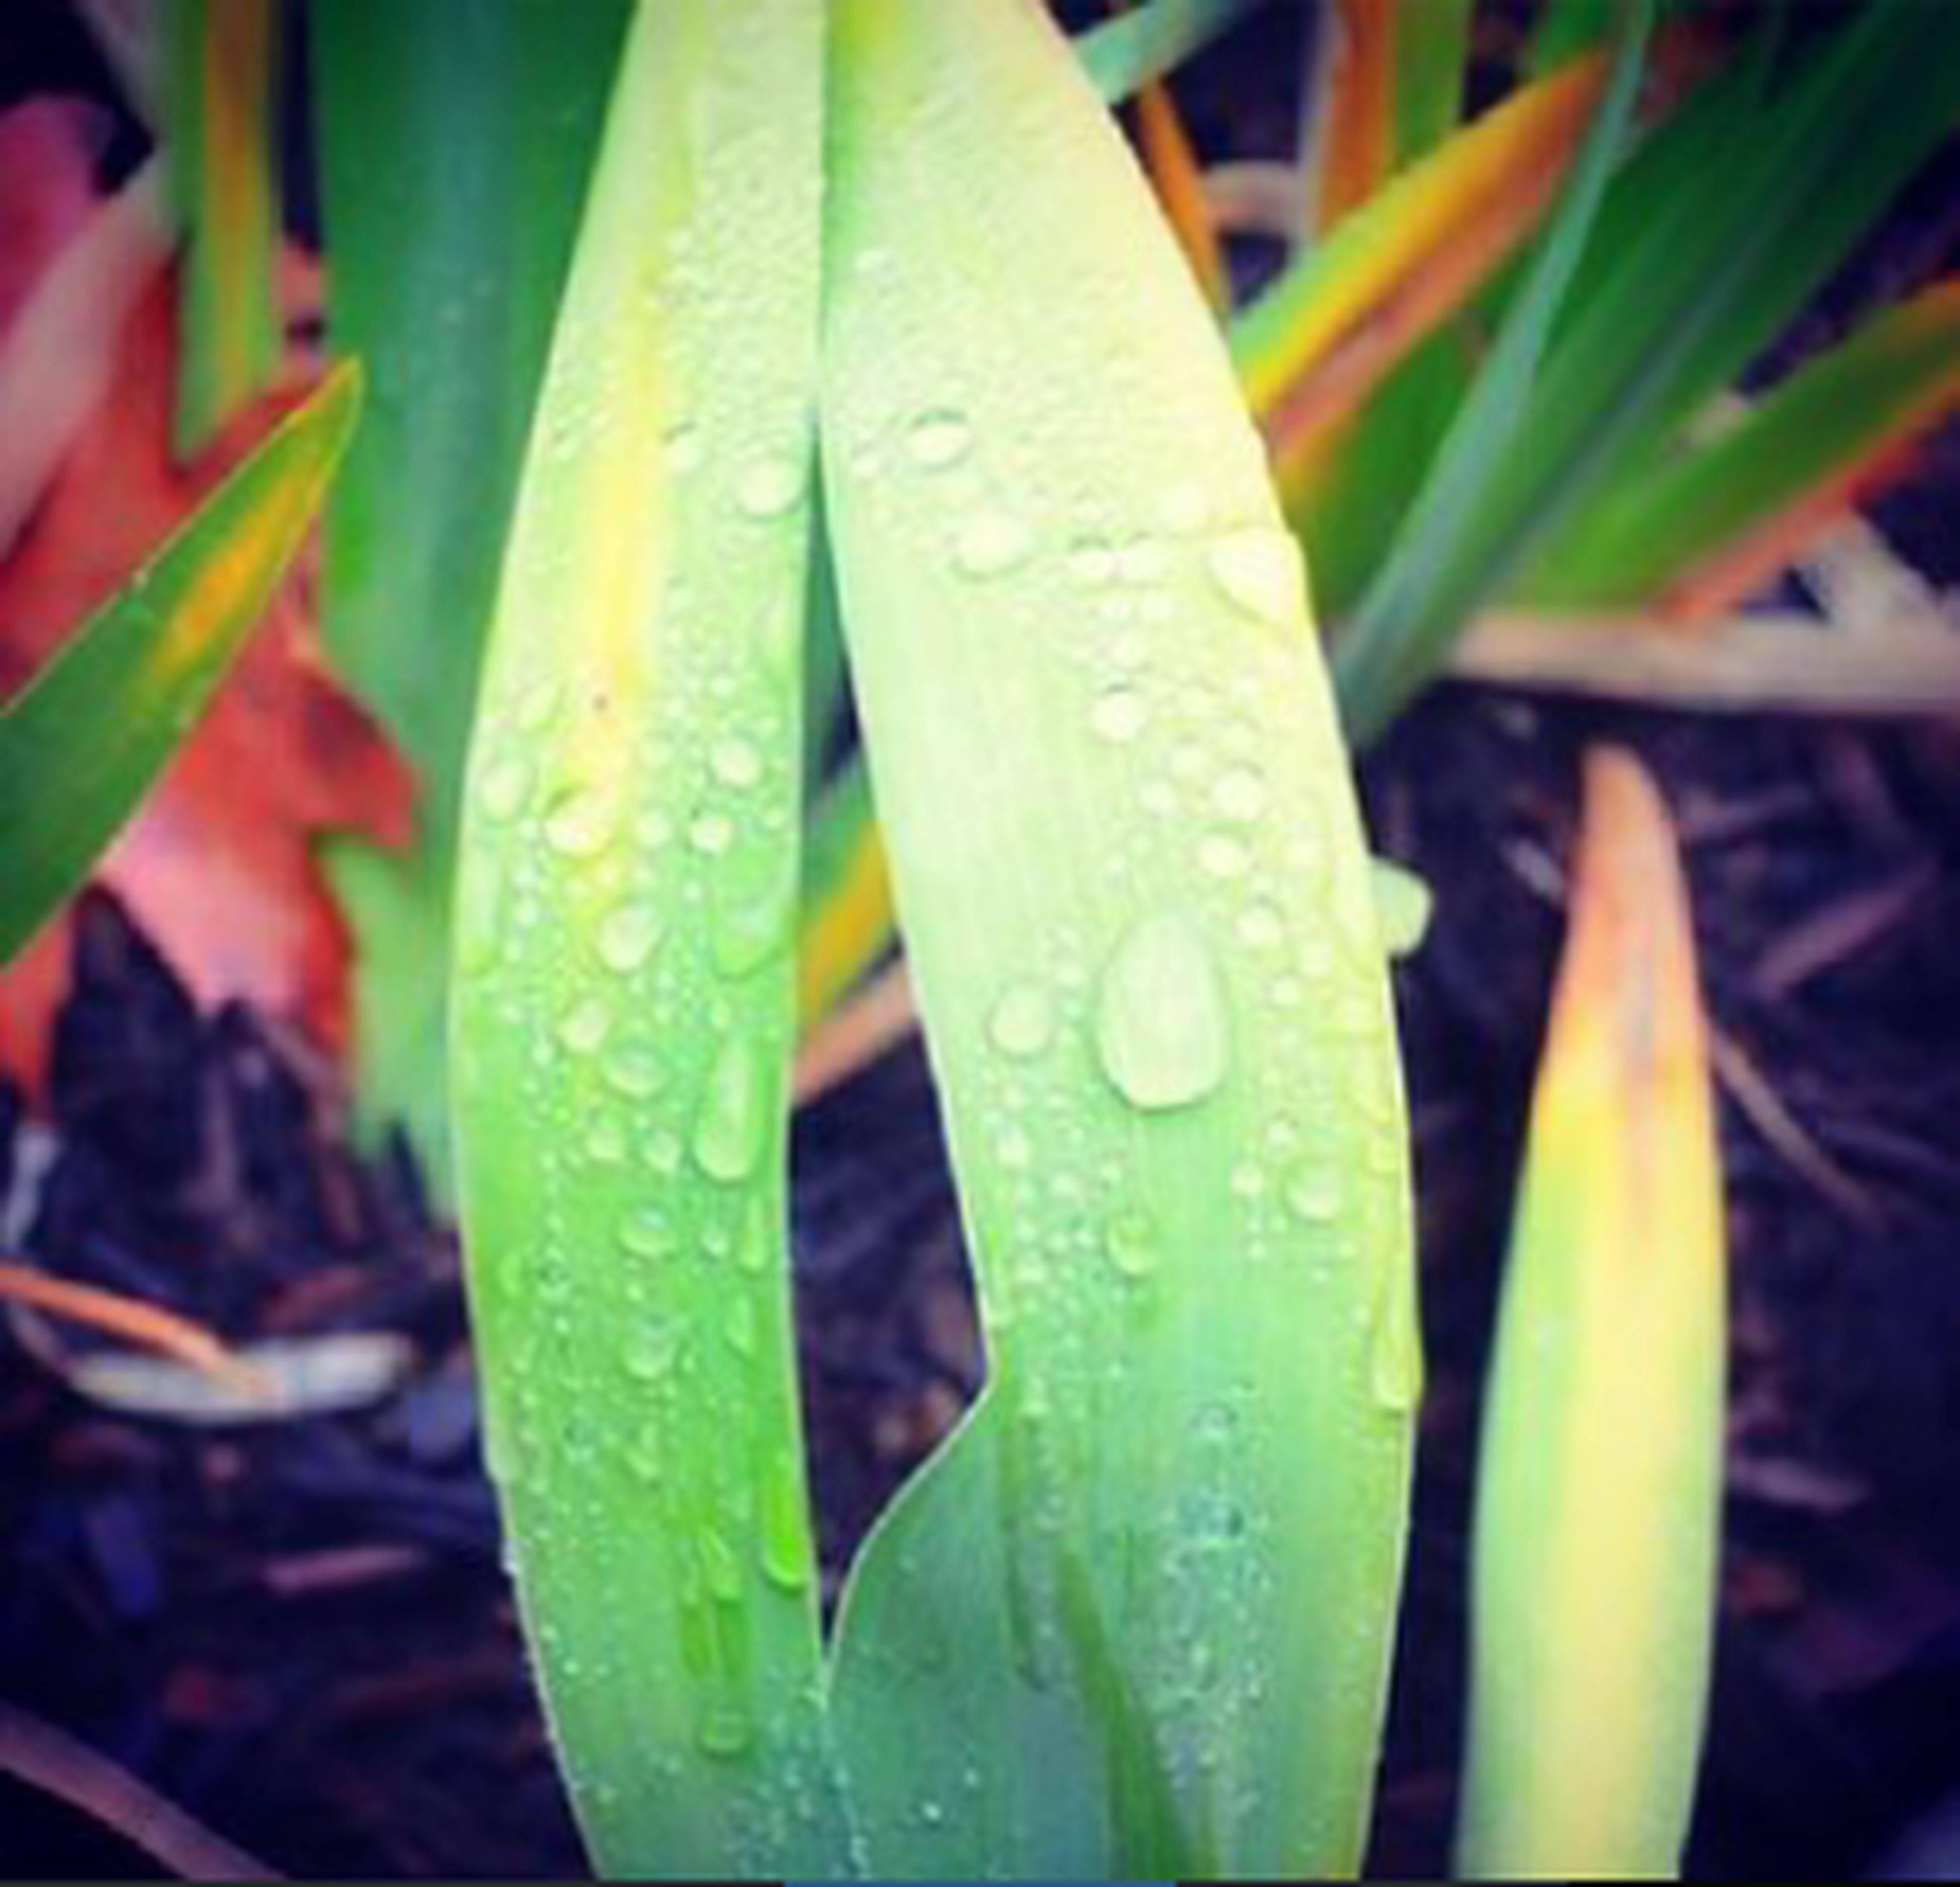 drop, leaf, close-up, wet, green color, growth, water, freshness, plant, nature, focus on foreground, dew, beauty in nature, fragility, raindrop, selective focus, day, outdoors, droplet, rain